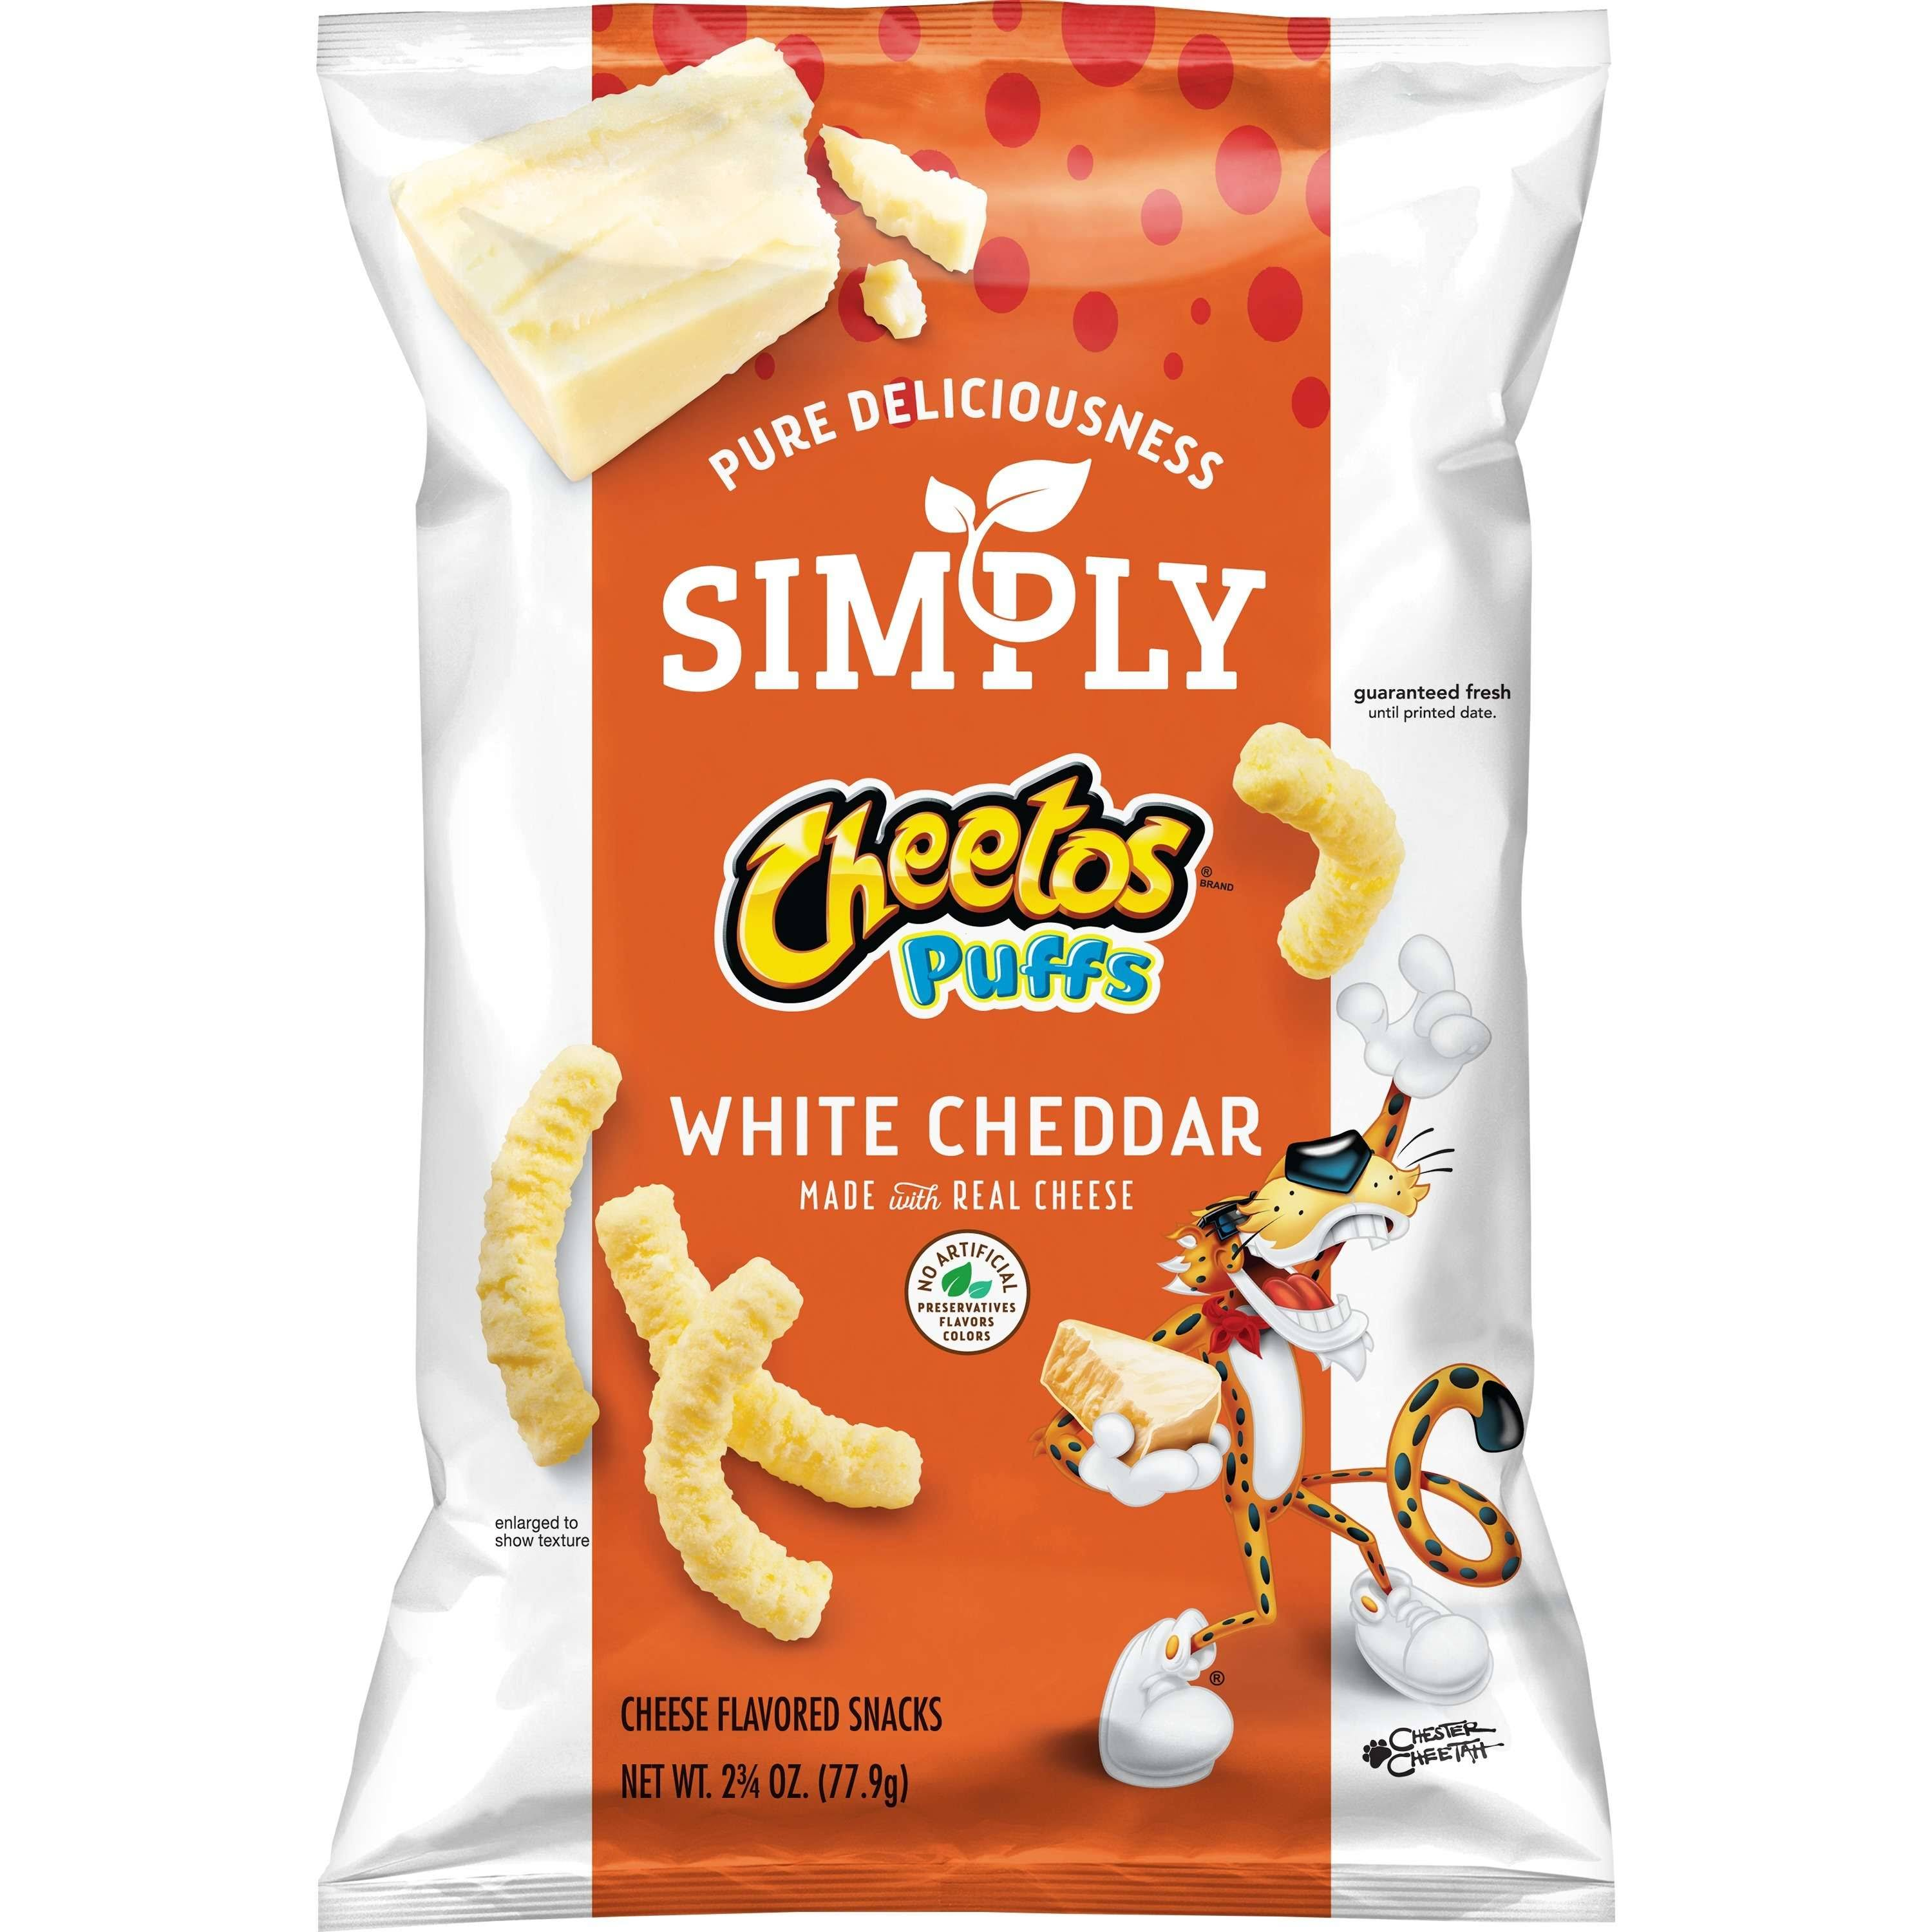 Cheetos Puffs Cheese Flavored Snacks, White Cheddar - 2.75 oz